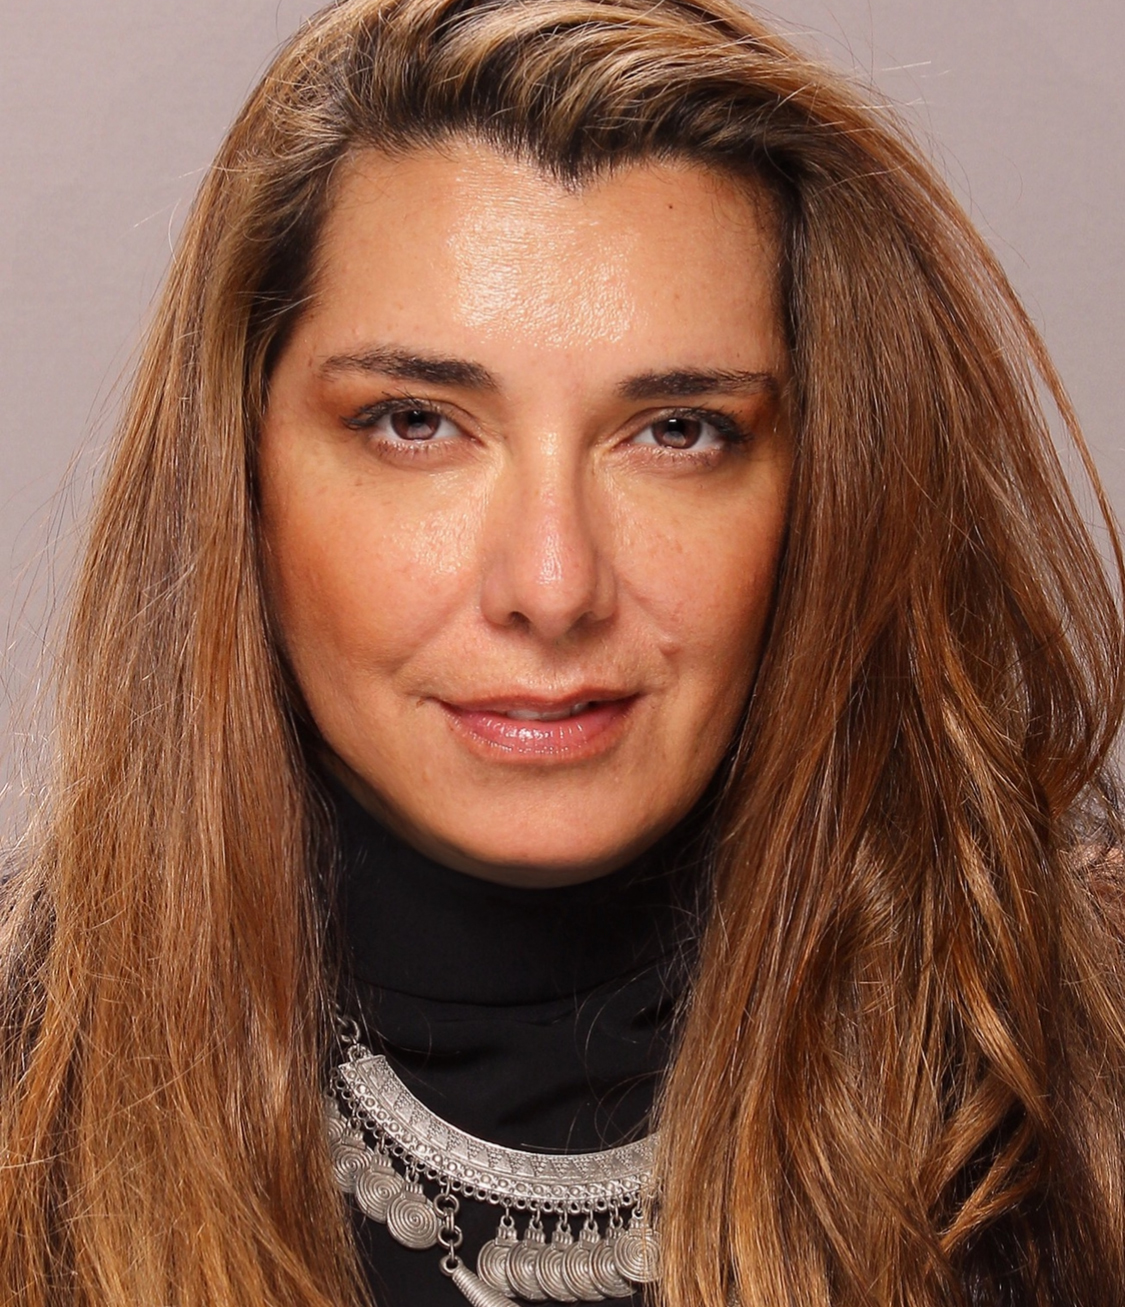 Amalia Lazarov, CEO & Founder of Travelicious